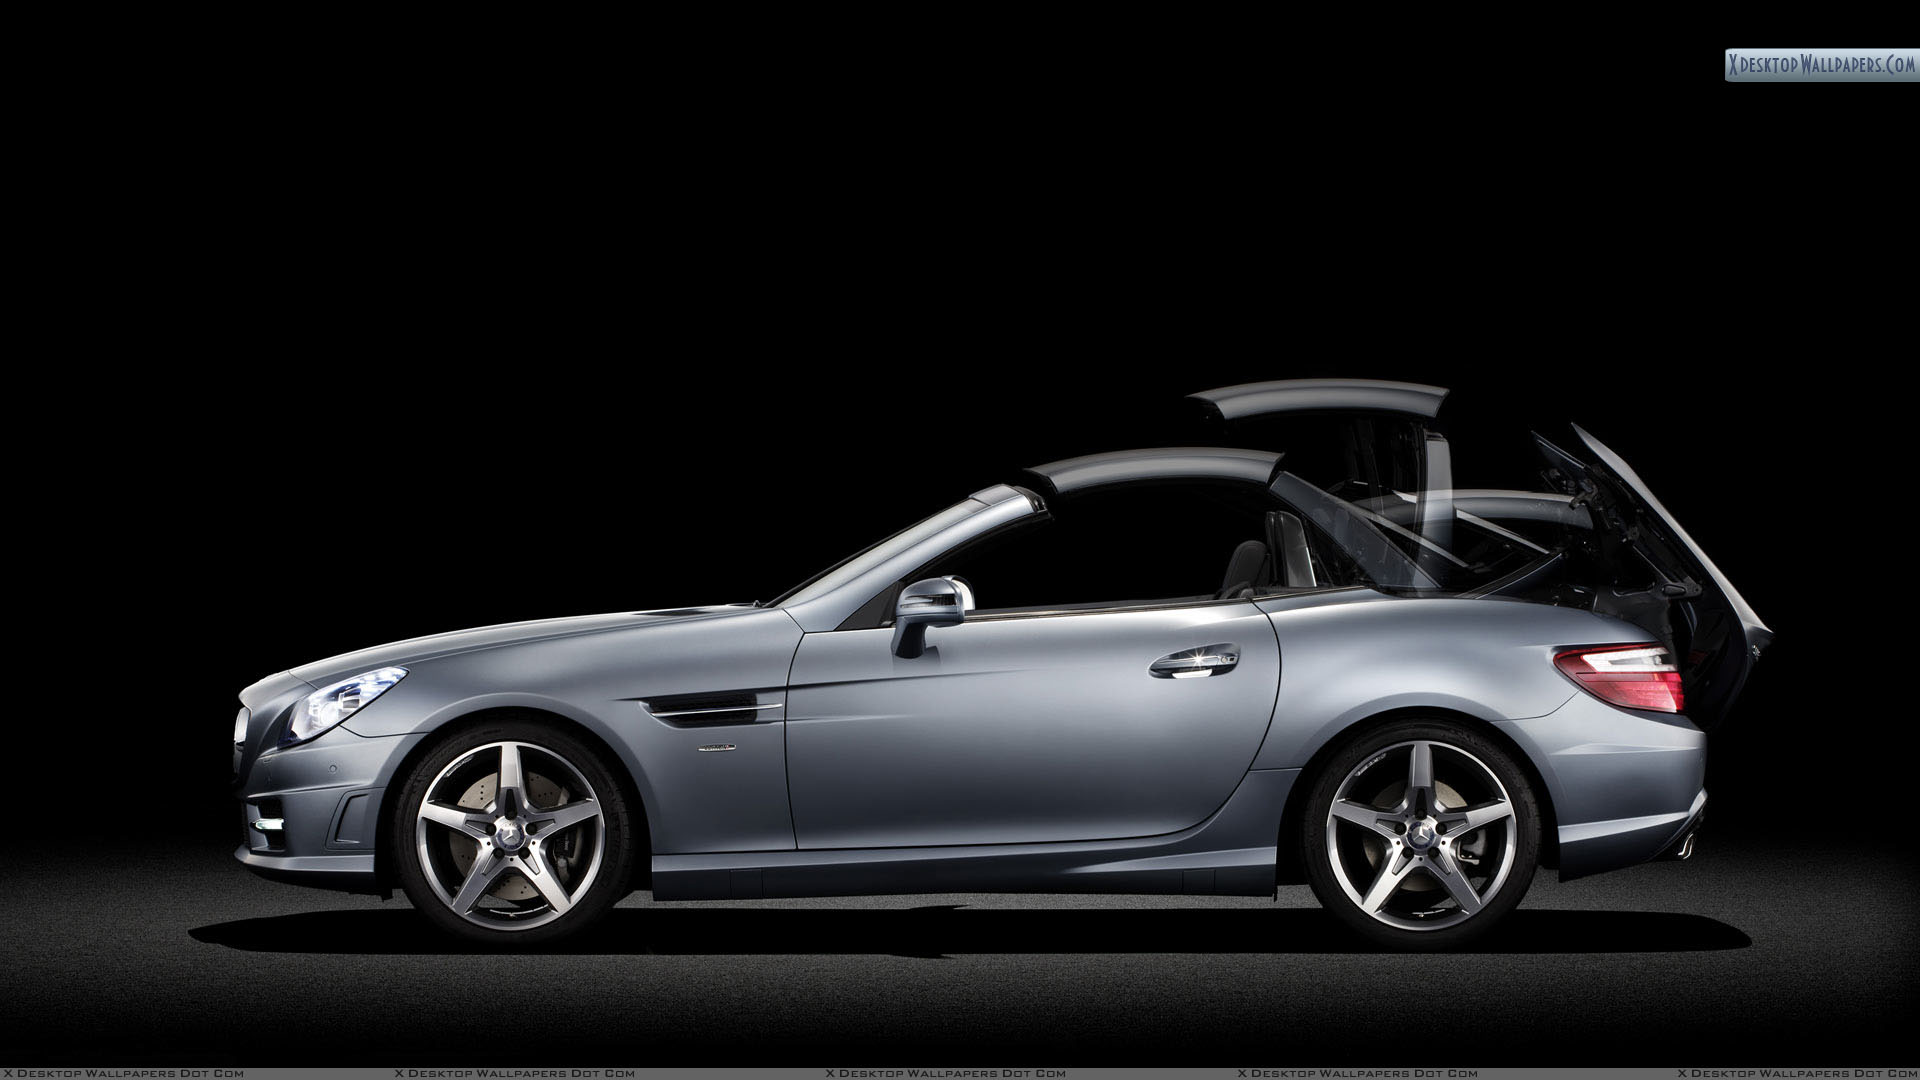 Silver mercedes benz slk 350 side view wallpaper for Mercedes benz silver